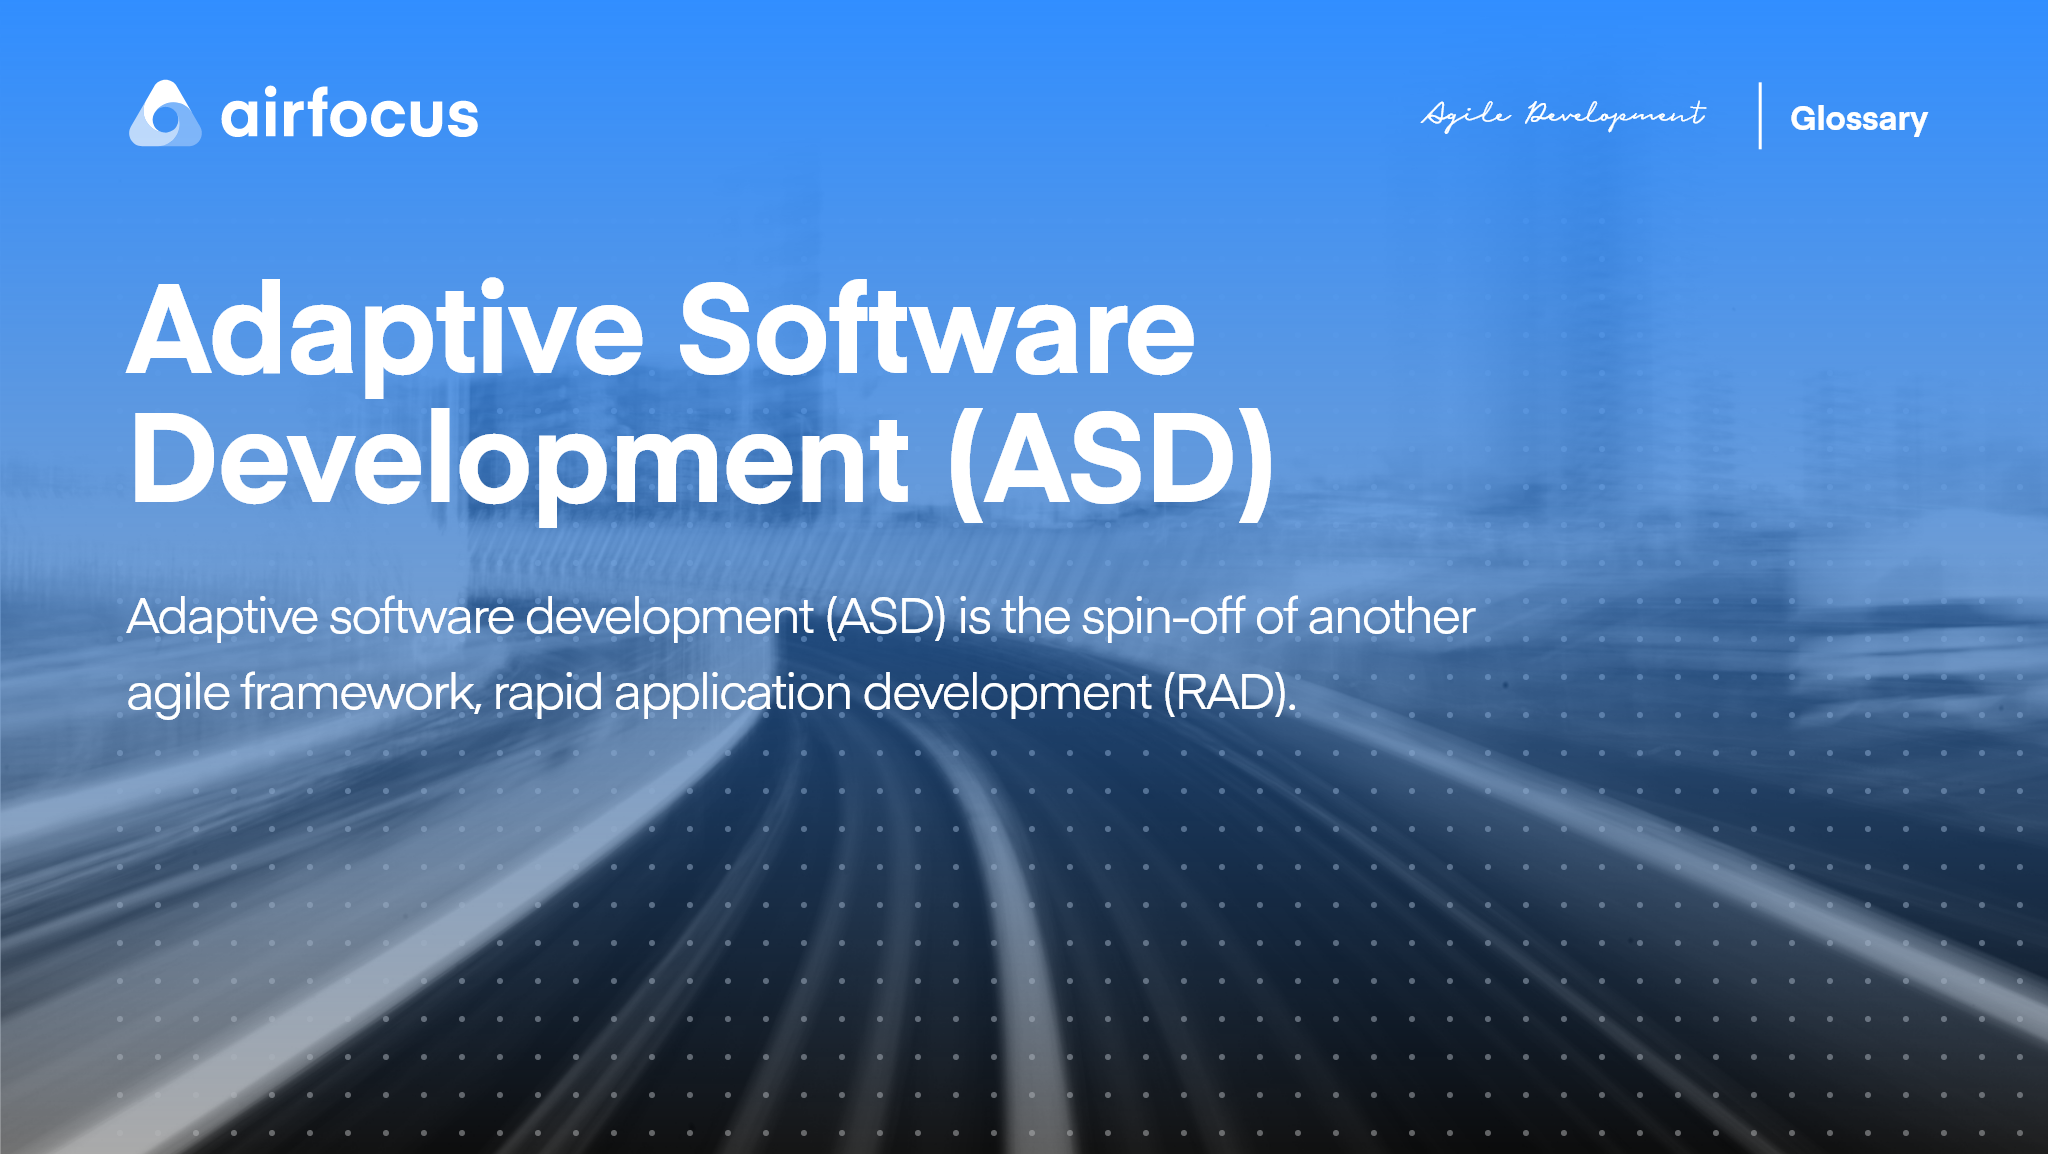 What Is Adaptive Software Development (ASD)